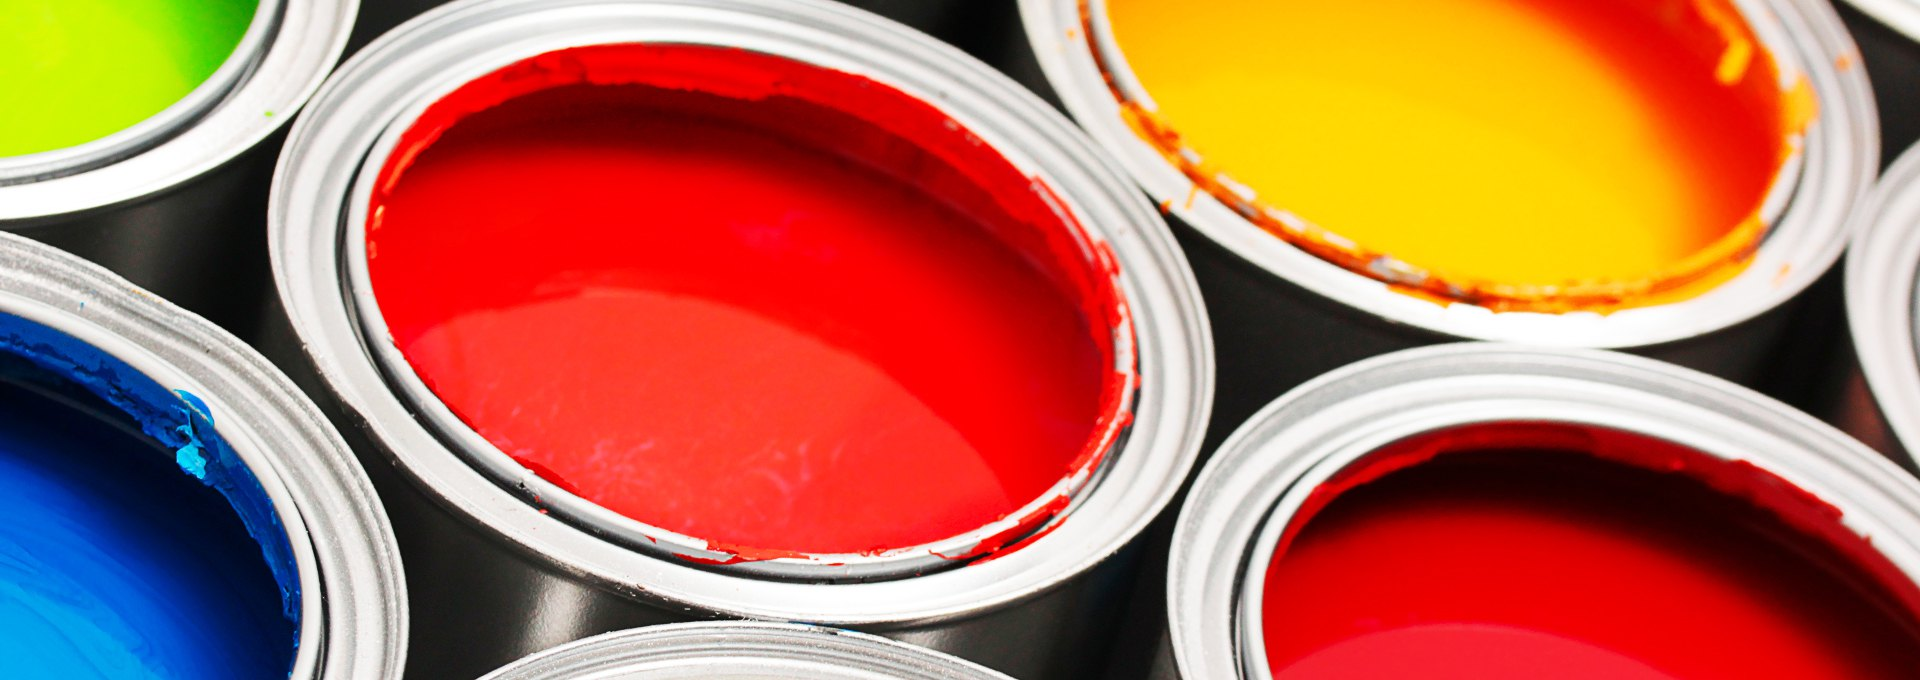 Commercial and Residential Painting Contractors in the Denver Metro Area